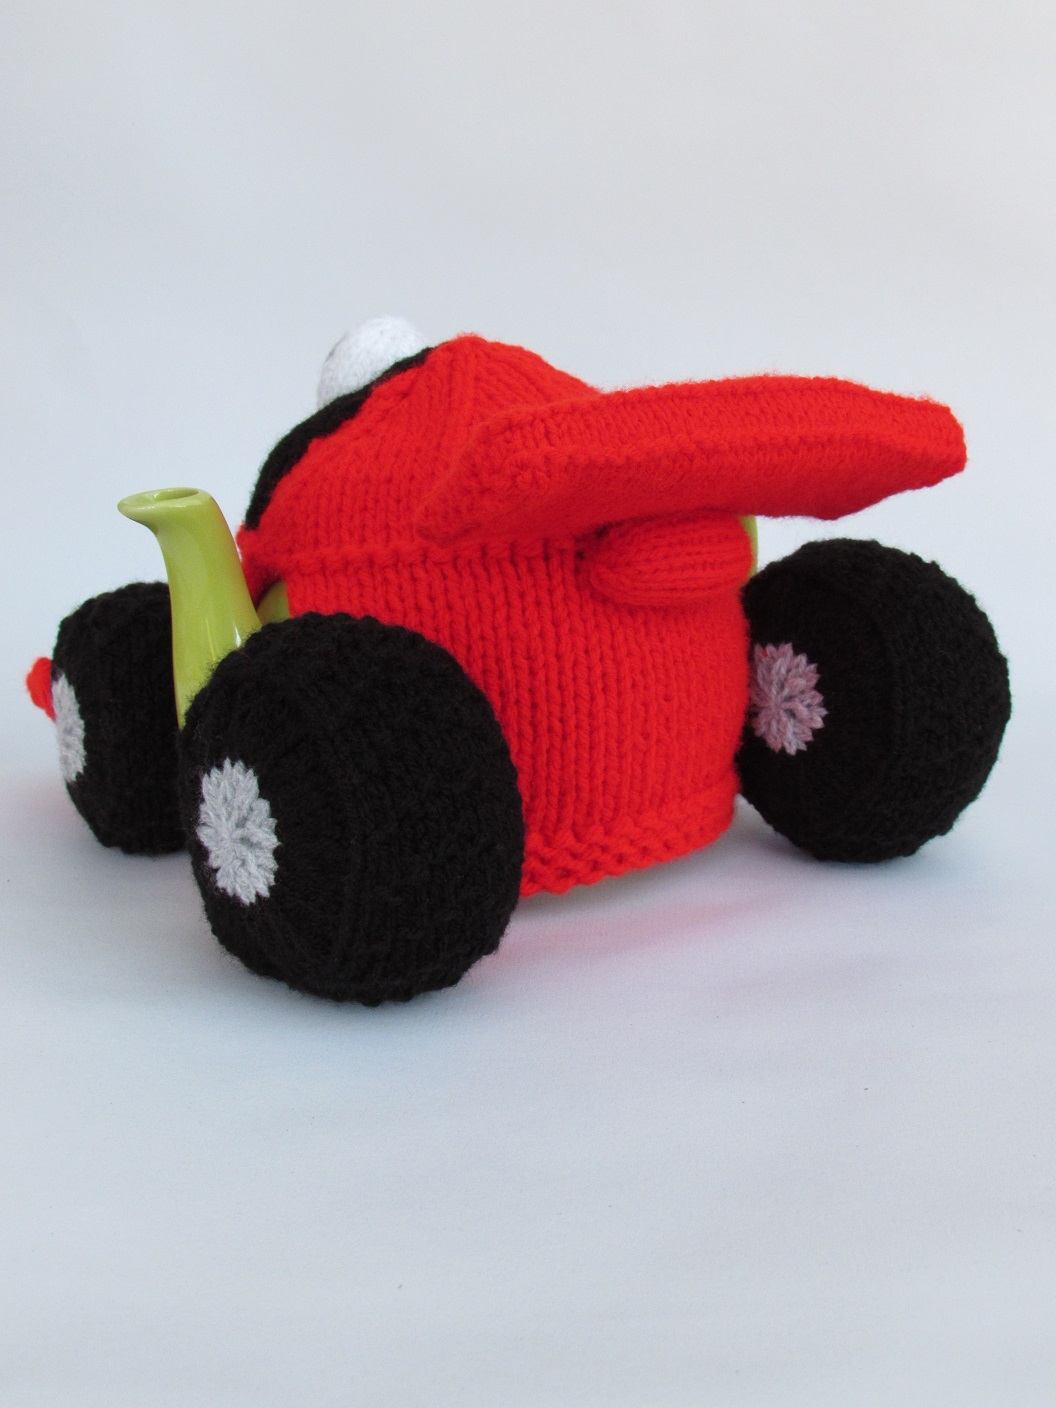 Formula One Racing Car tea cosy knitting pattern